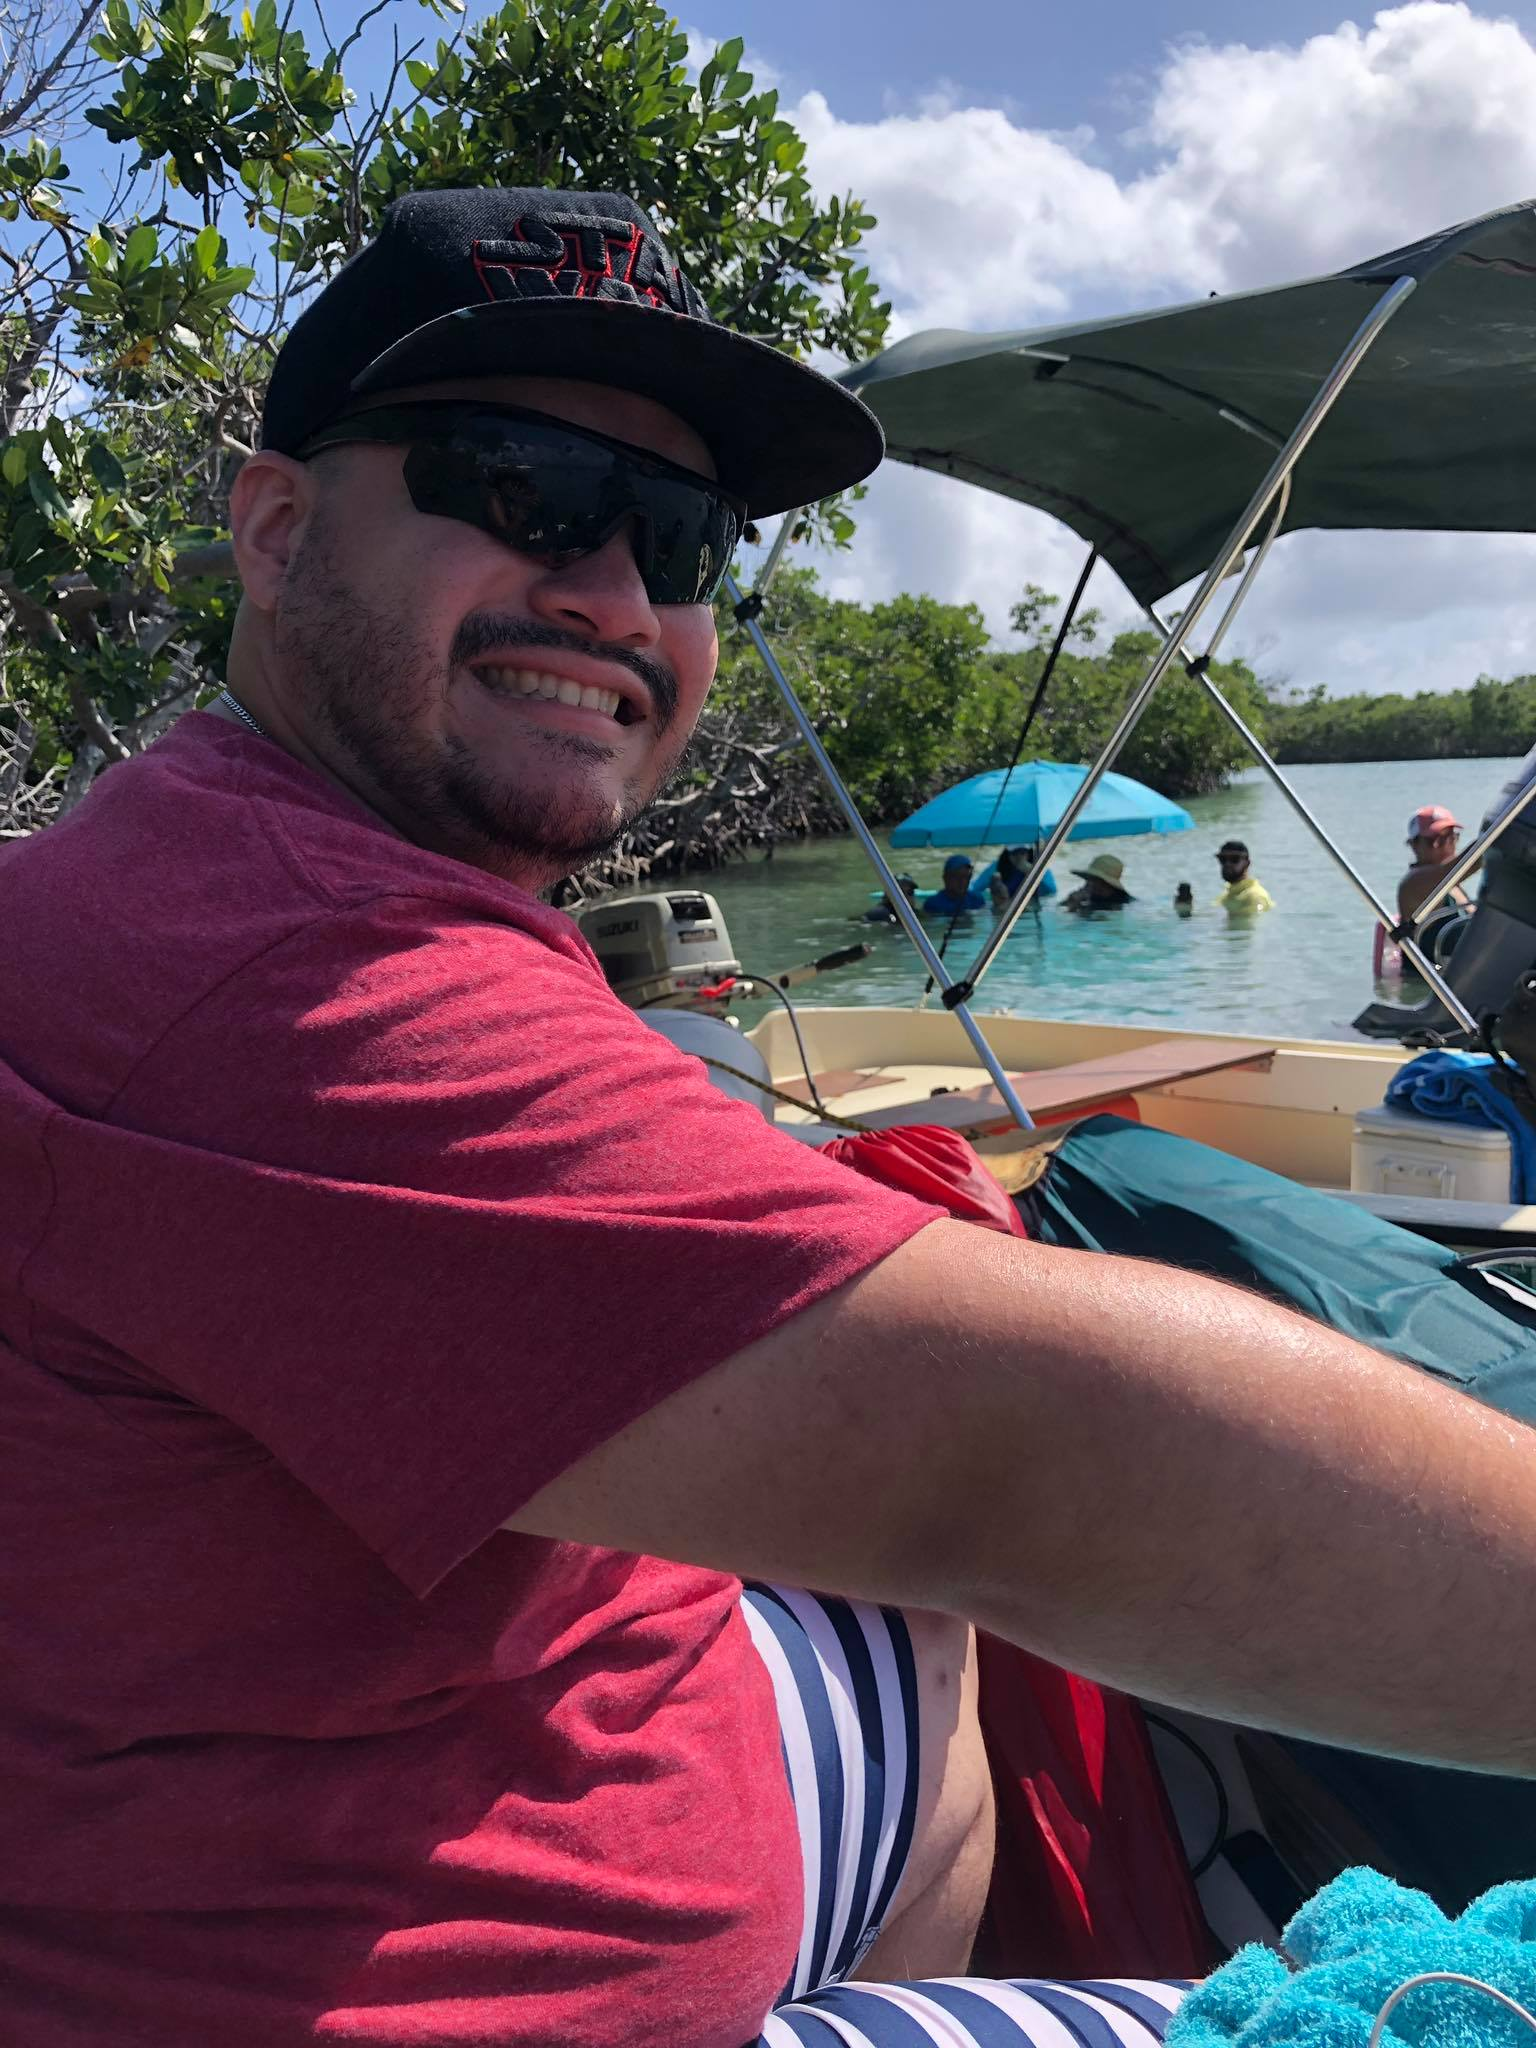 Sailing Life Day 358 Trip to Cayo Matias, Salinas with our Puerto Rican friends6.jpg